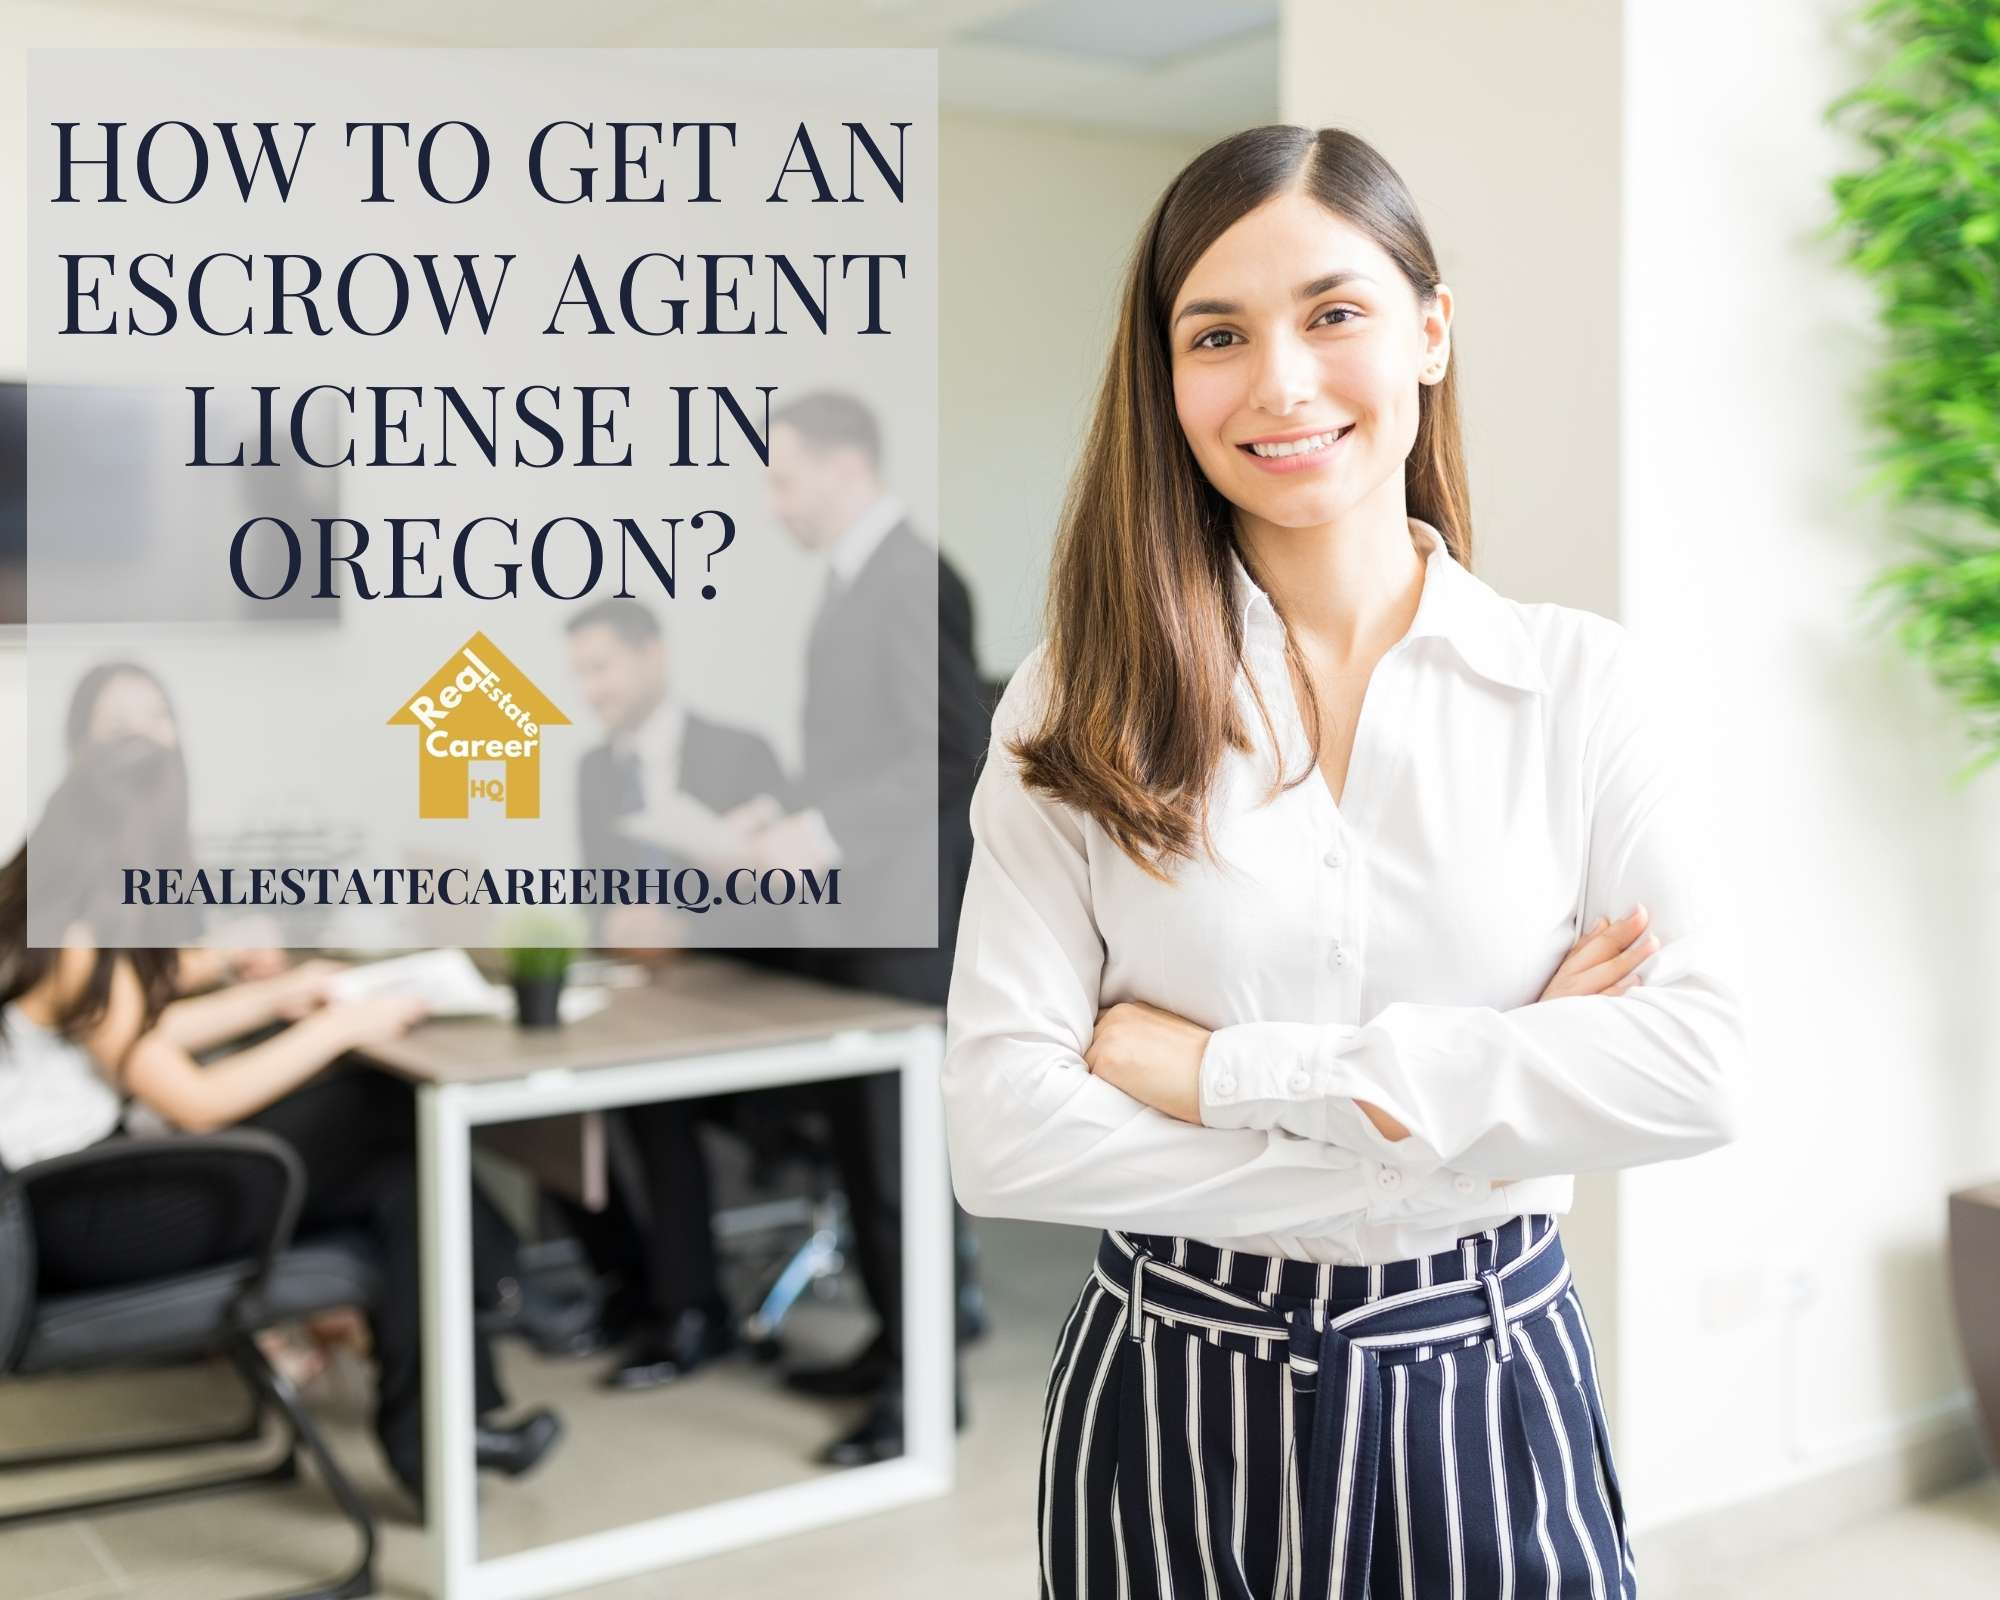 How to become an escrow officer in Oregon?